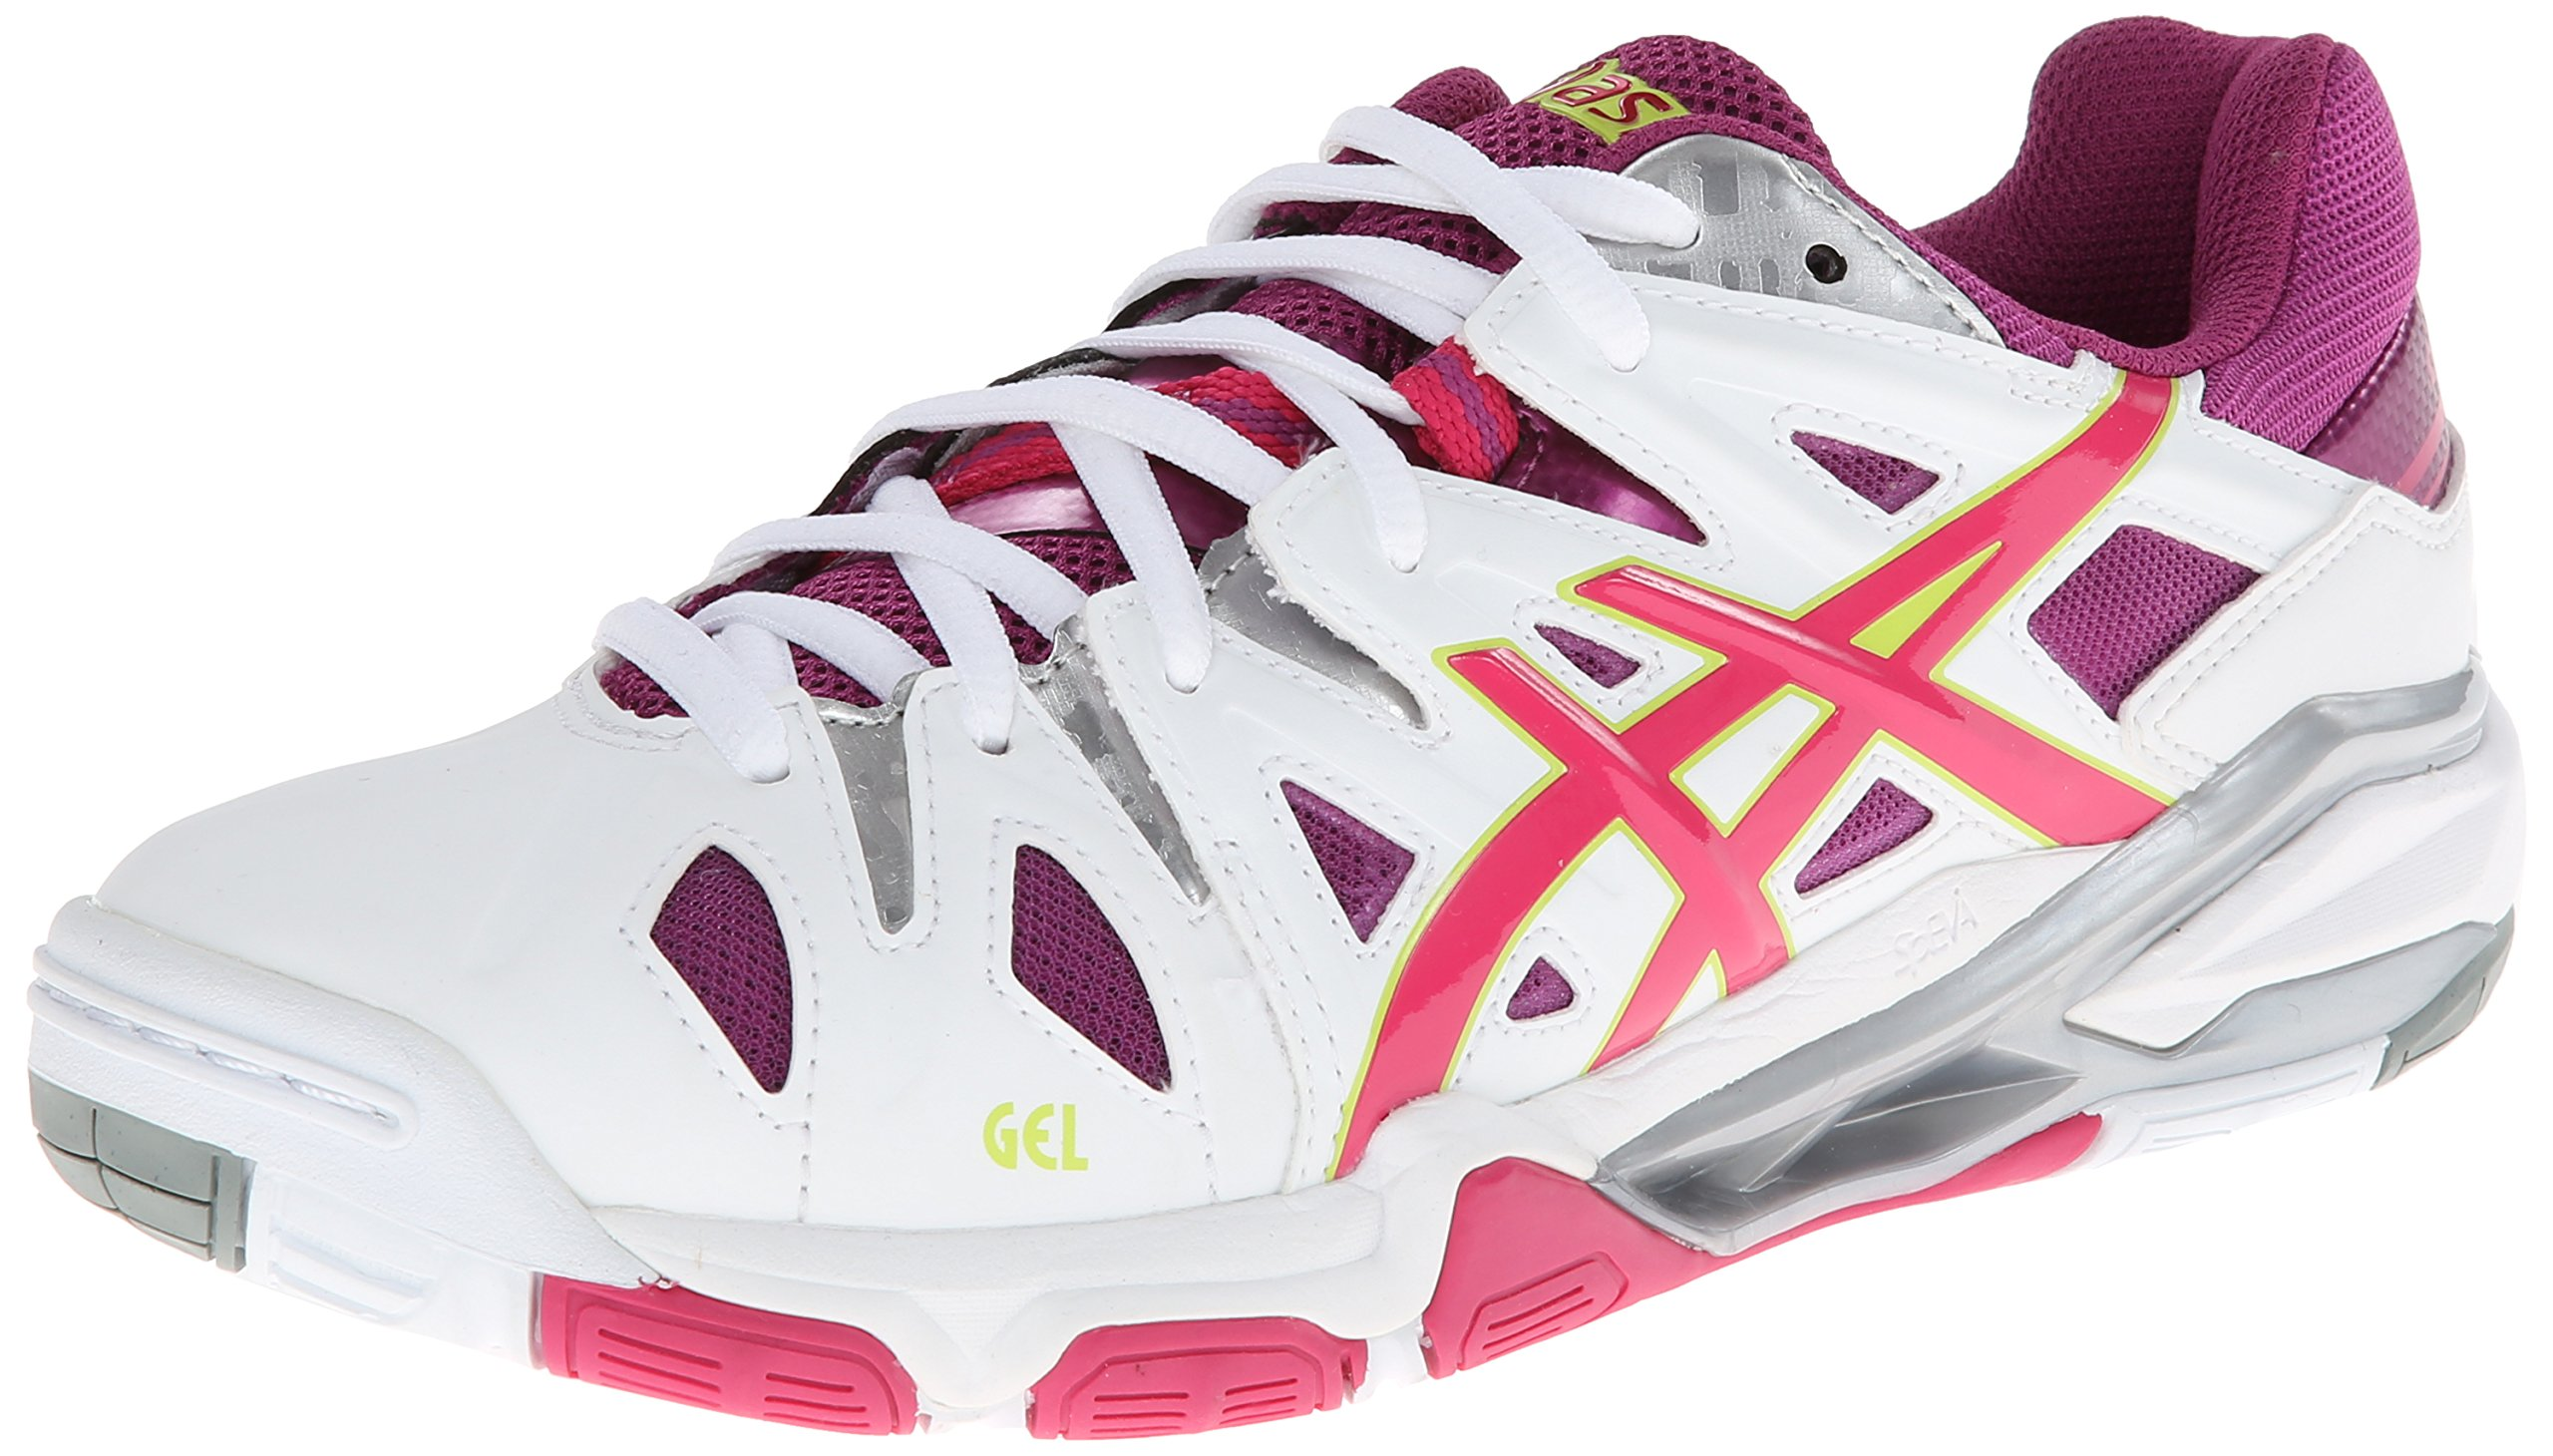 ASICS Women's GEL-Sensei 5 White/Magenta/Lime Sneaker 7 B - Medium